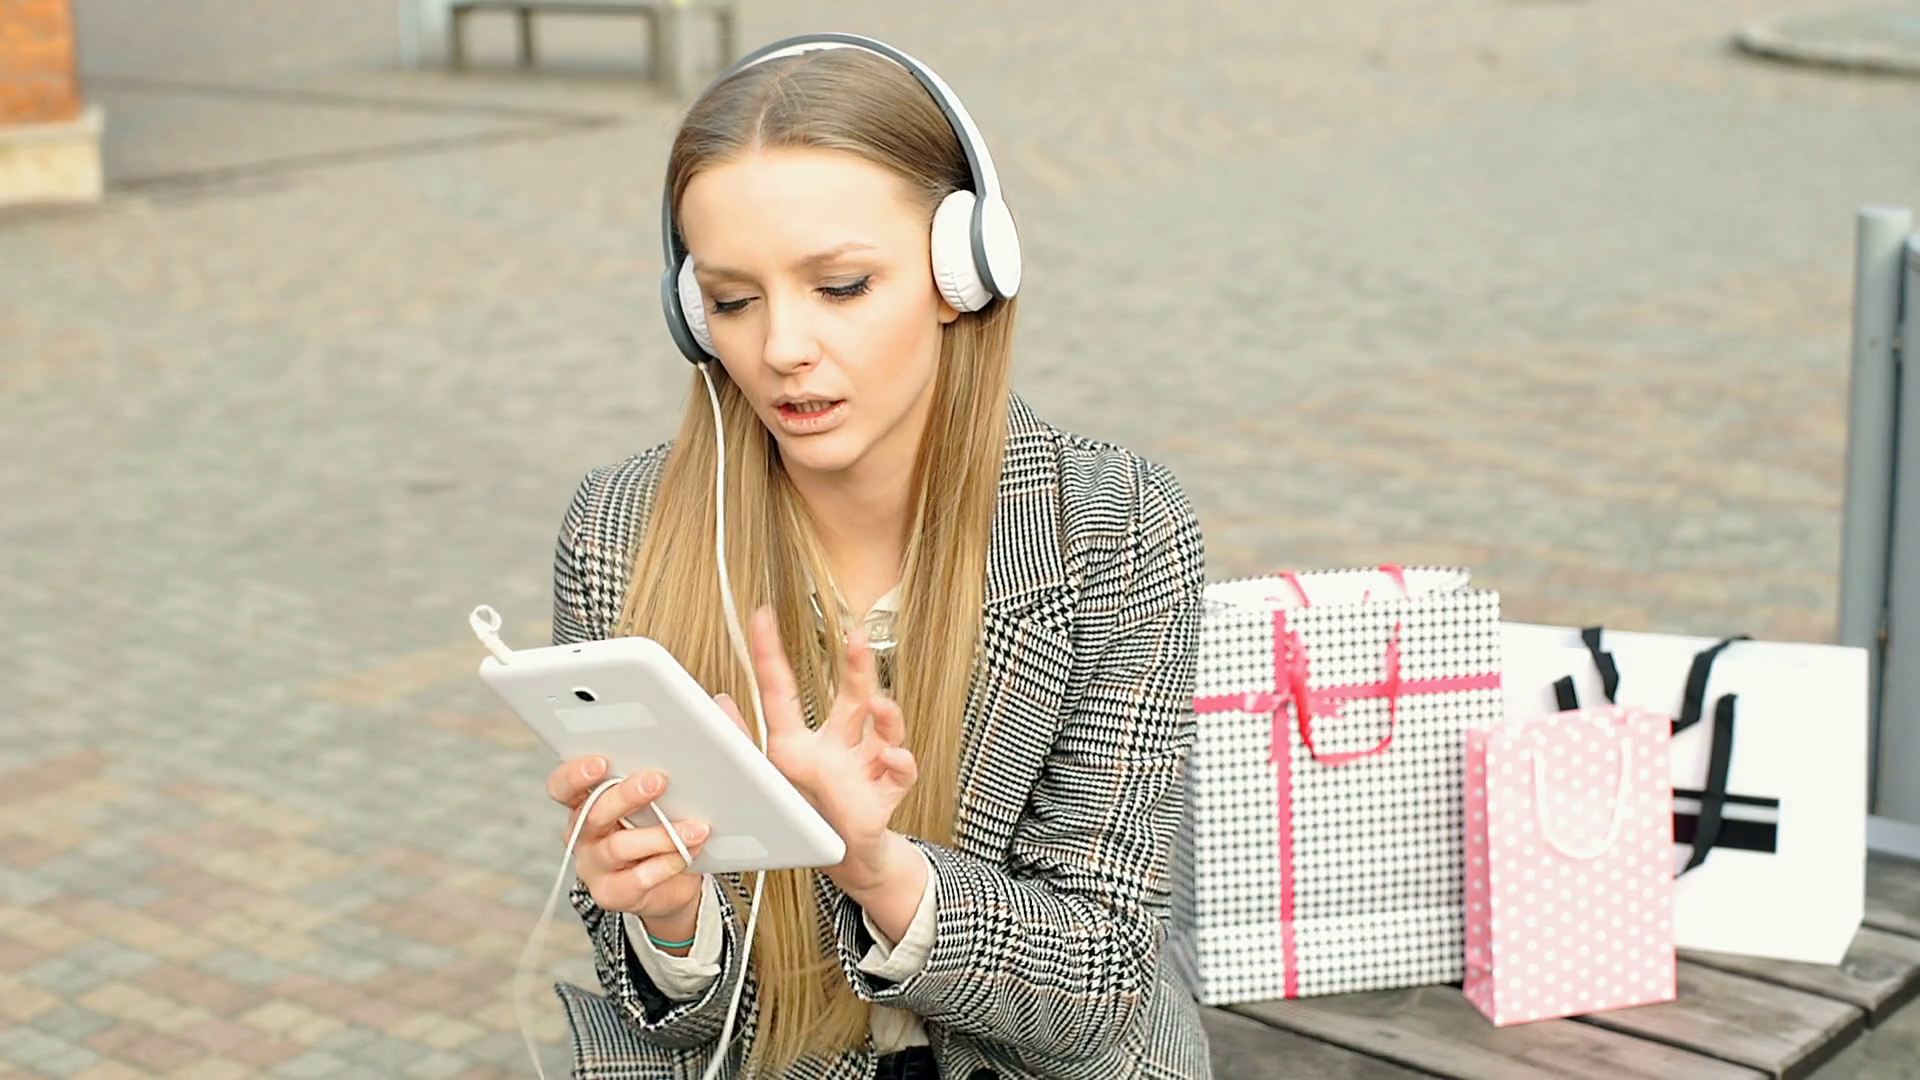 videoblocks-stylish-girl-whistles-while-listening-music-on-the-bench-after-shopping_h0g49kdsnl_thumbnail-full01